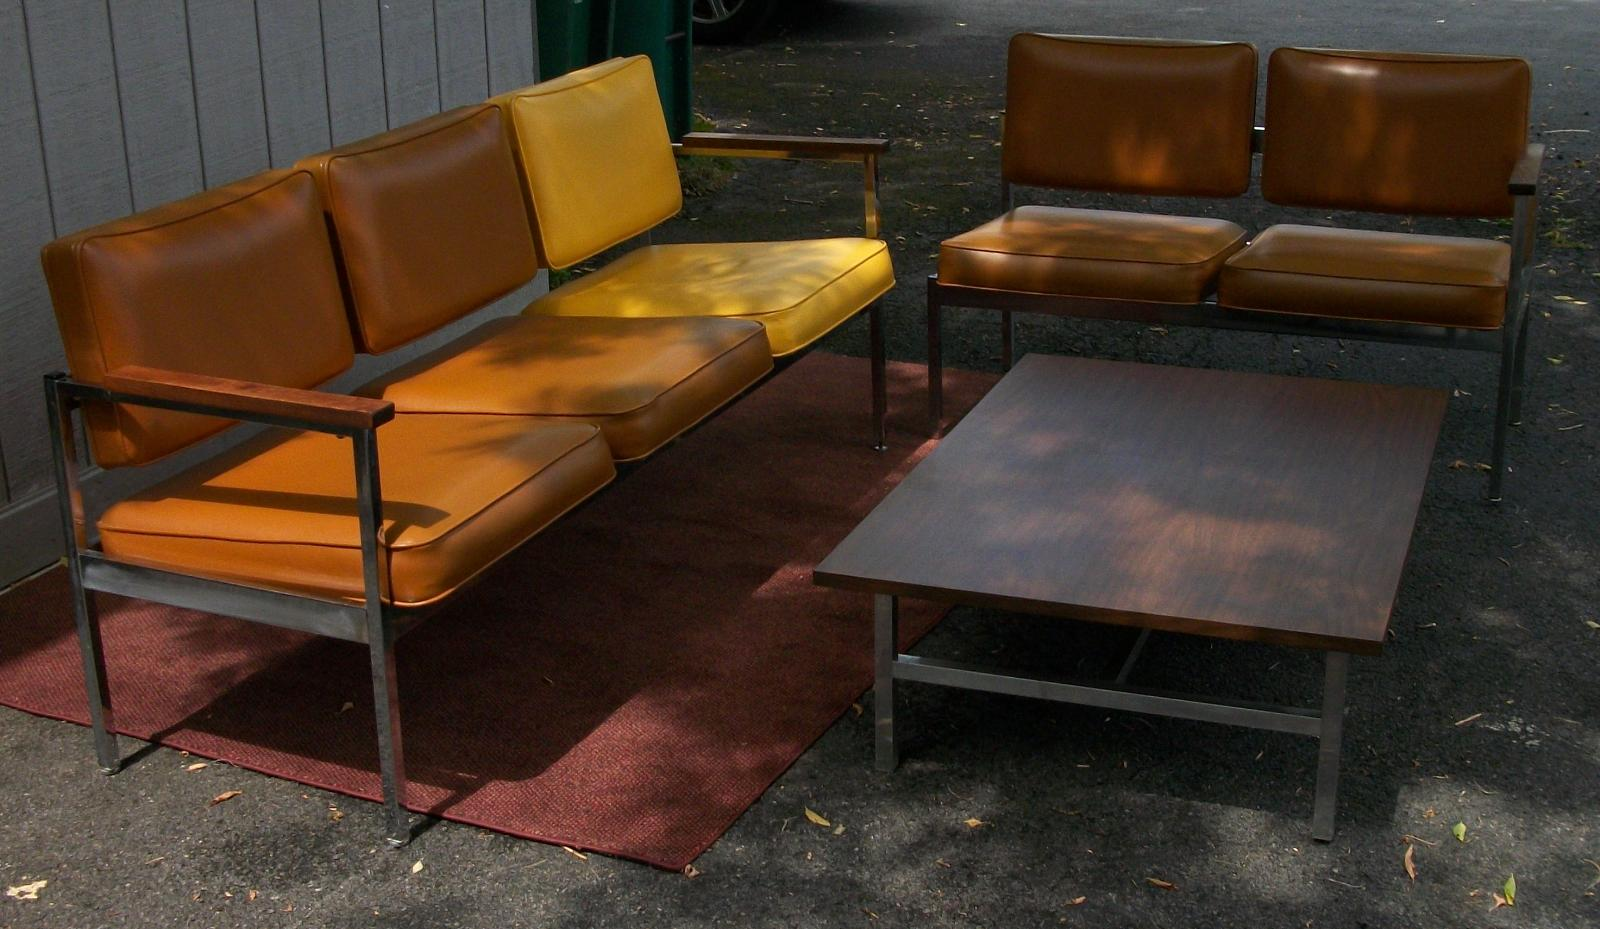 contemporary waiting room furniture. Delighful Contemporary Unique Mid Century Modern Waiting Room Set 2 Sectional Couches And 1 Table Throughout Contemporary Furniture D